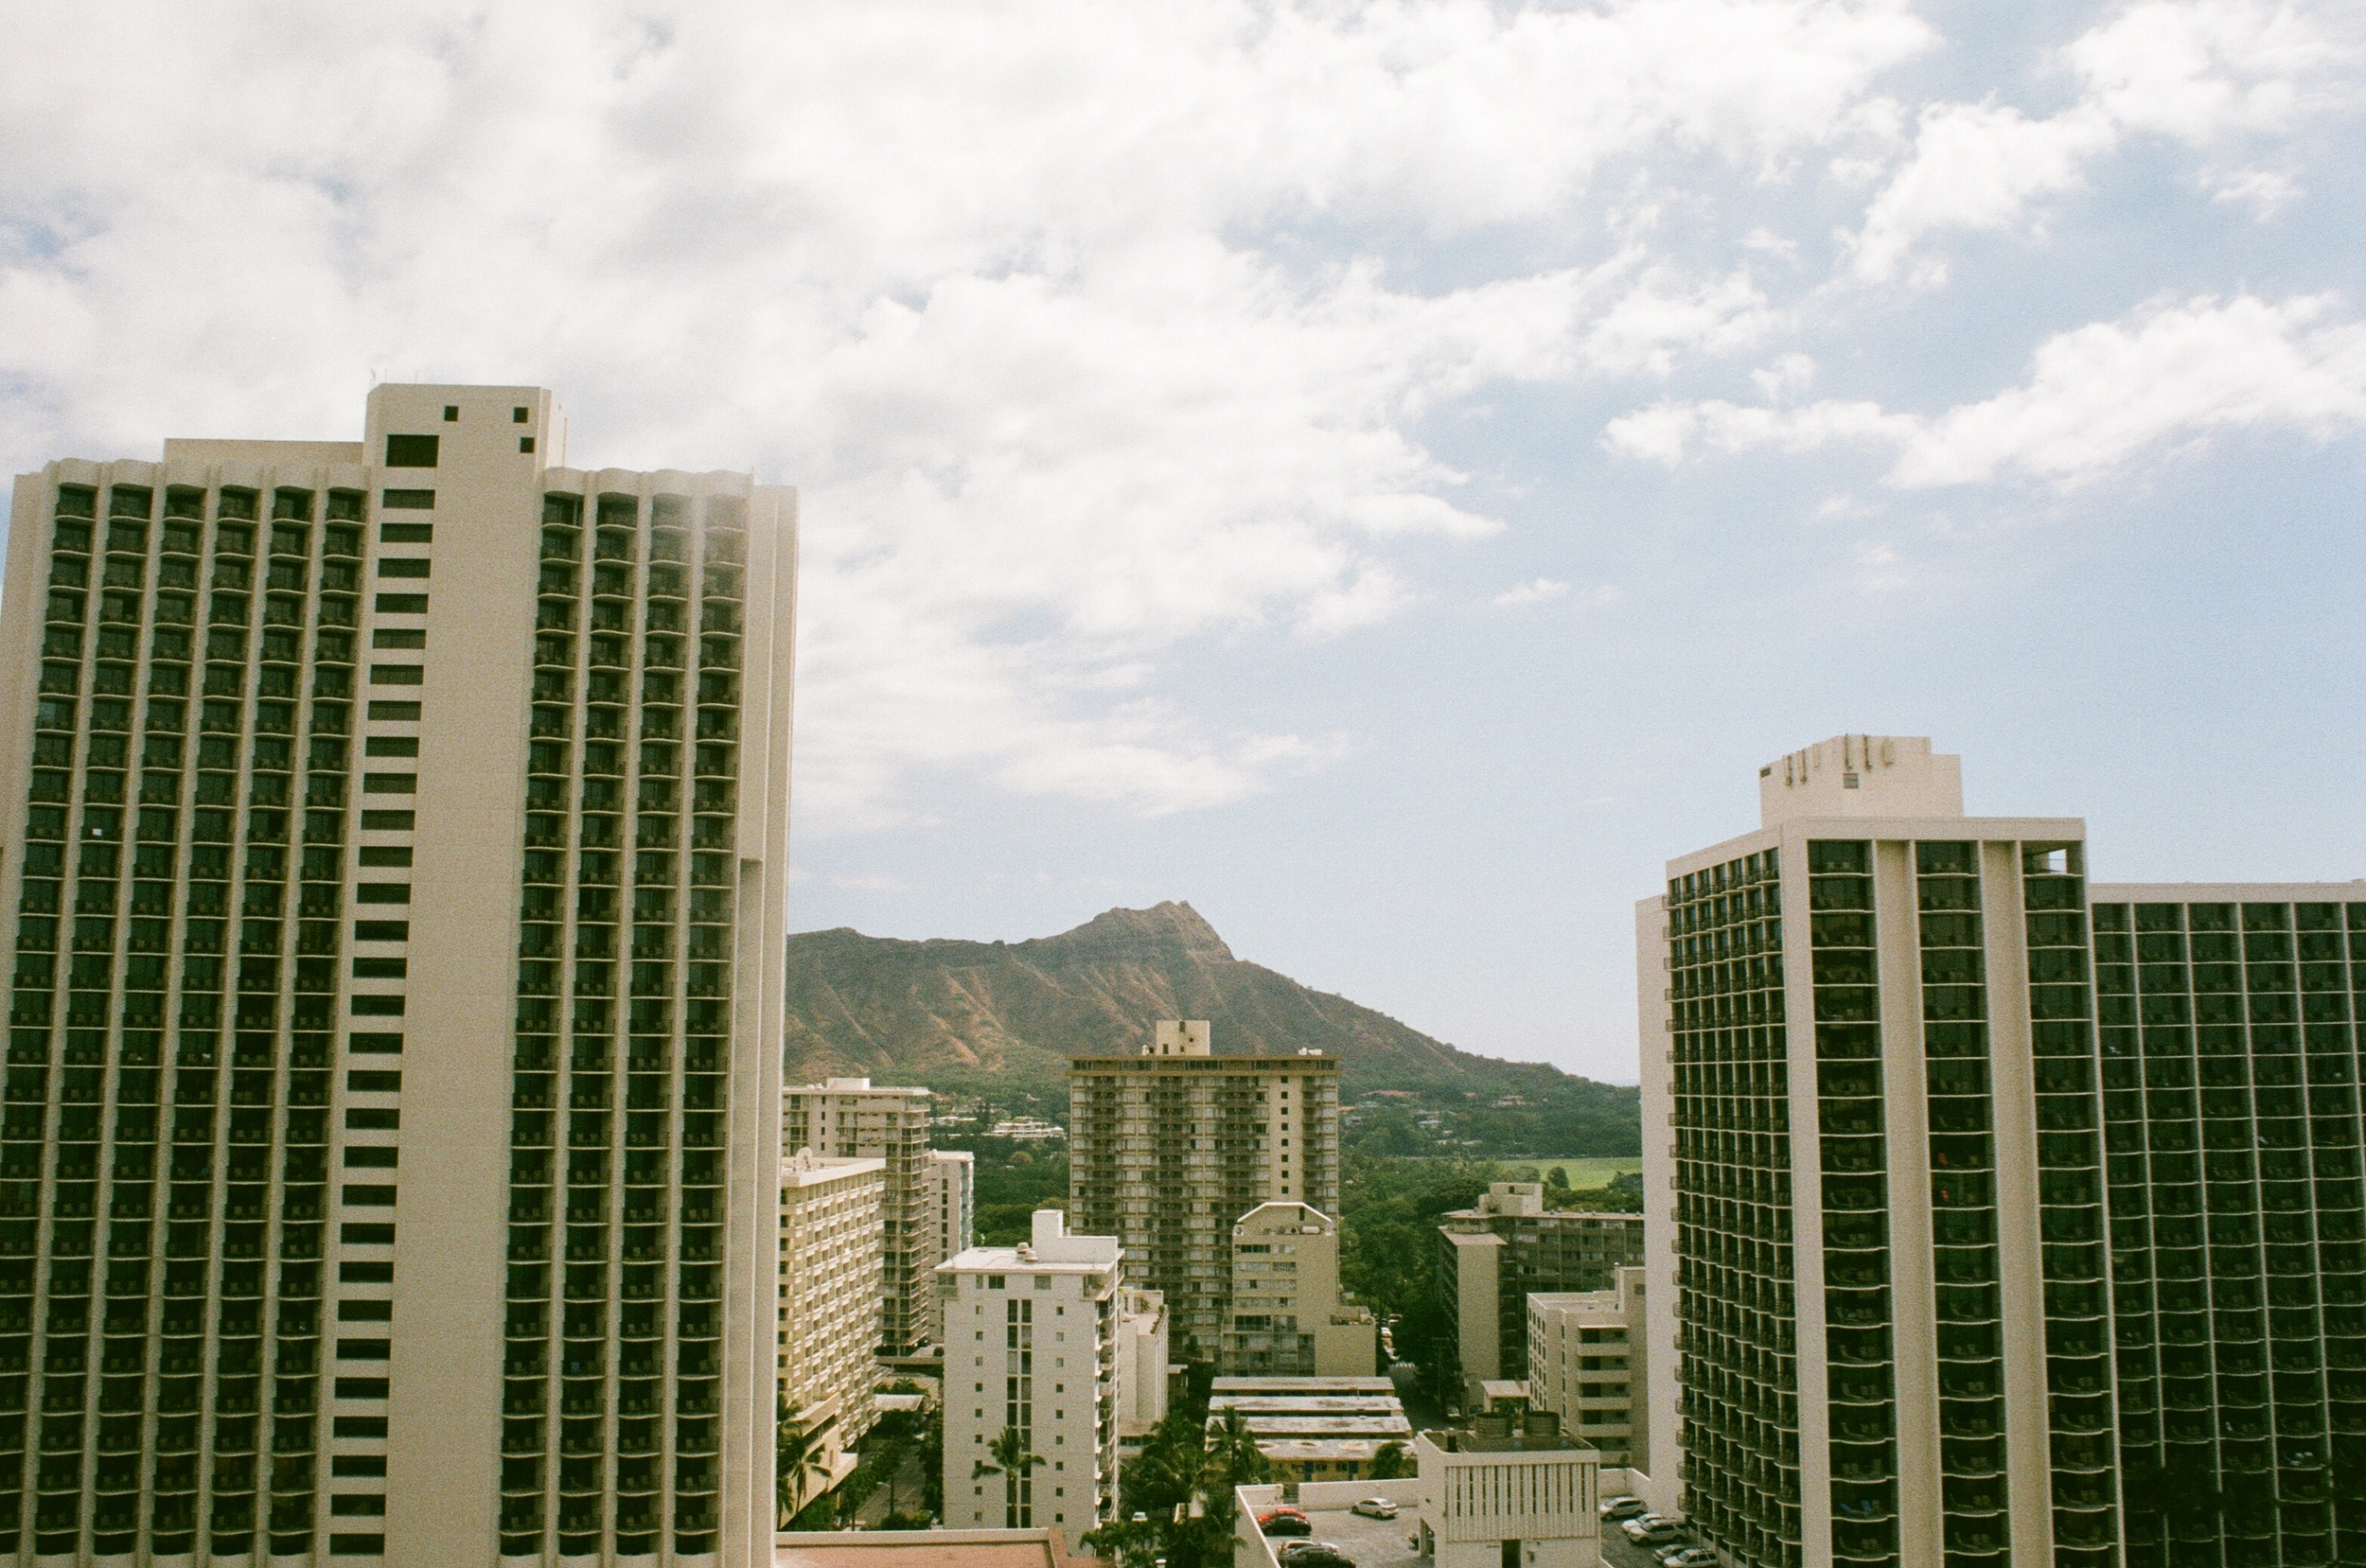 OAHU_MARCH_FEB16FUJI_SUPERIA00030.jpg